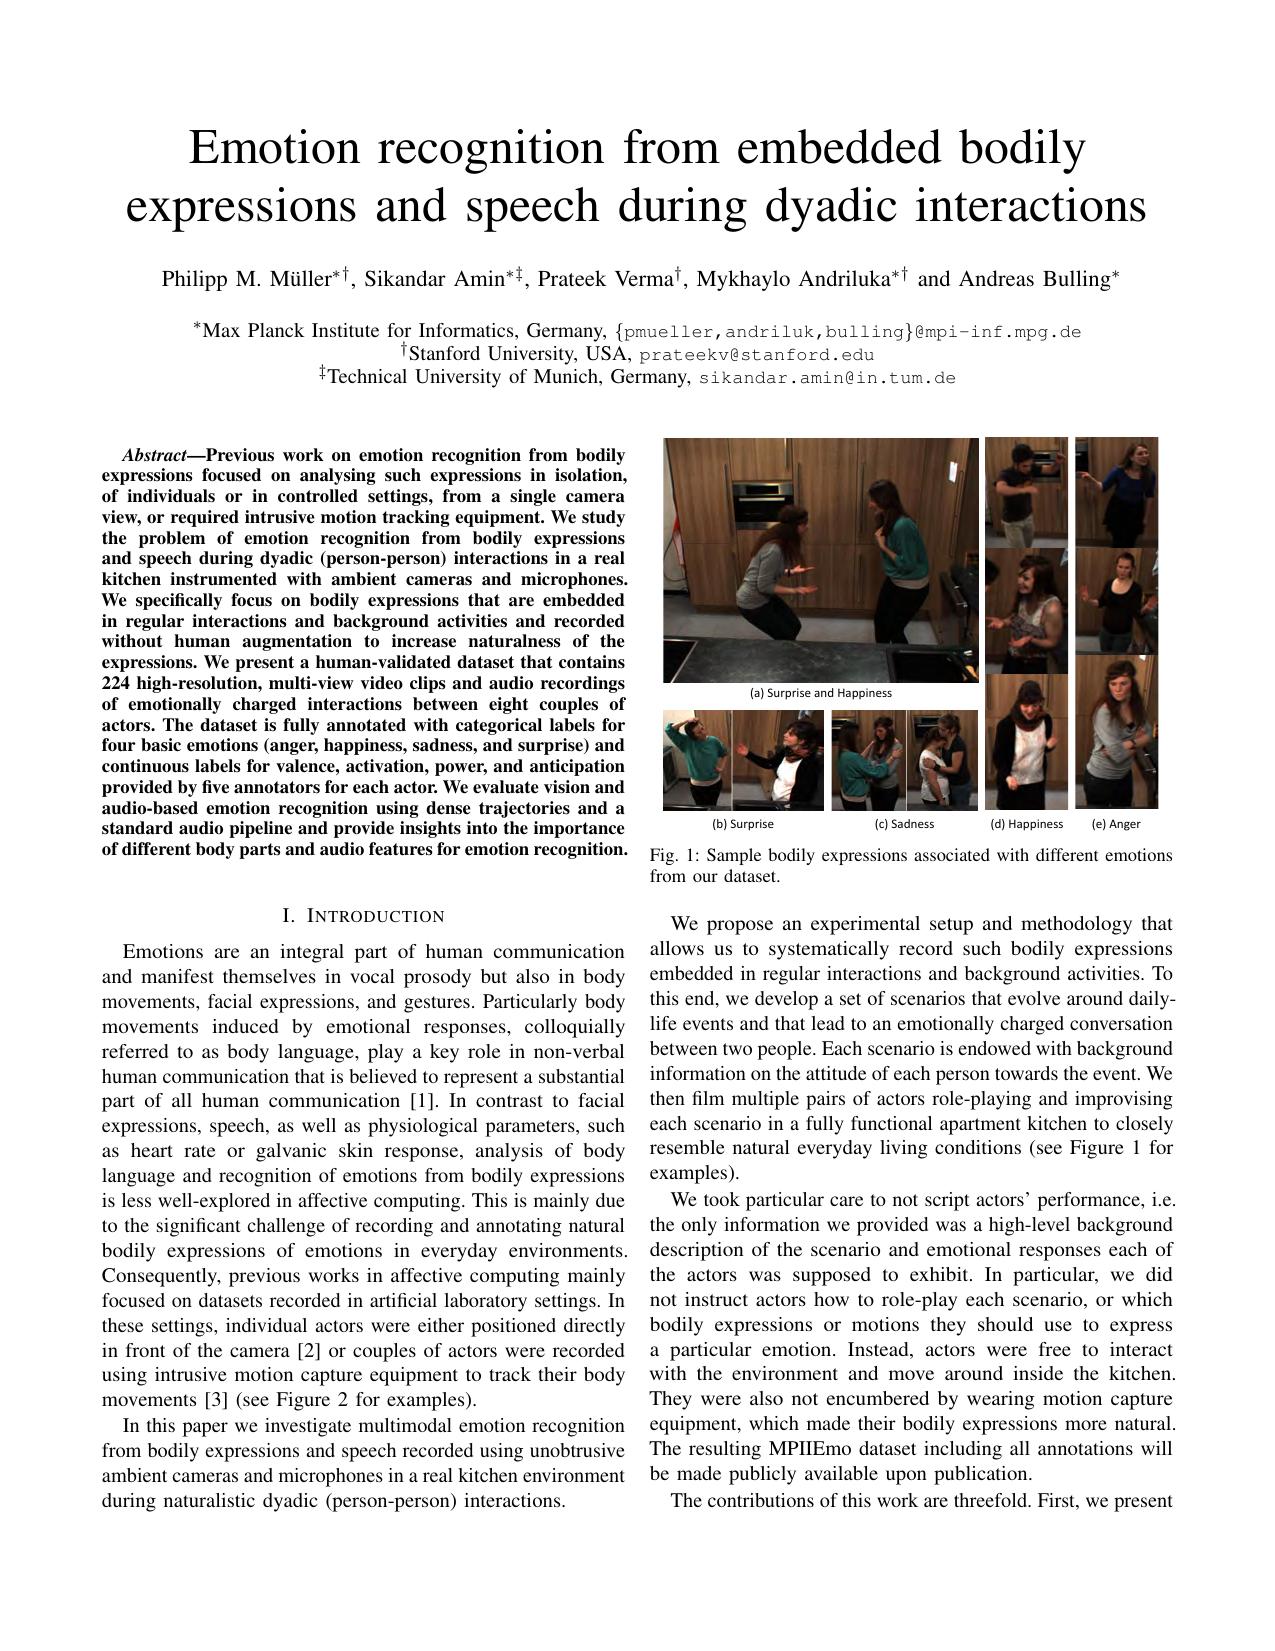 Emotion recognition from embedded bodily expressions and speech during dyadic interactions